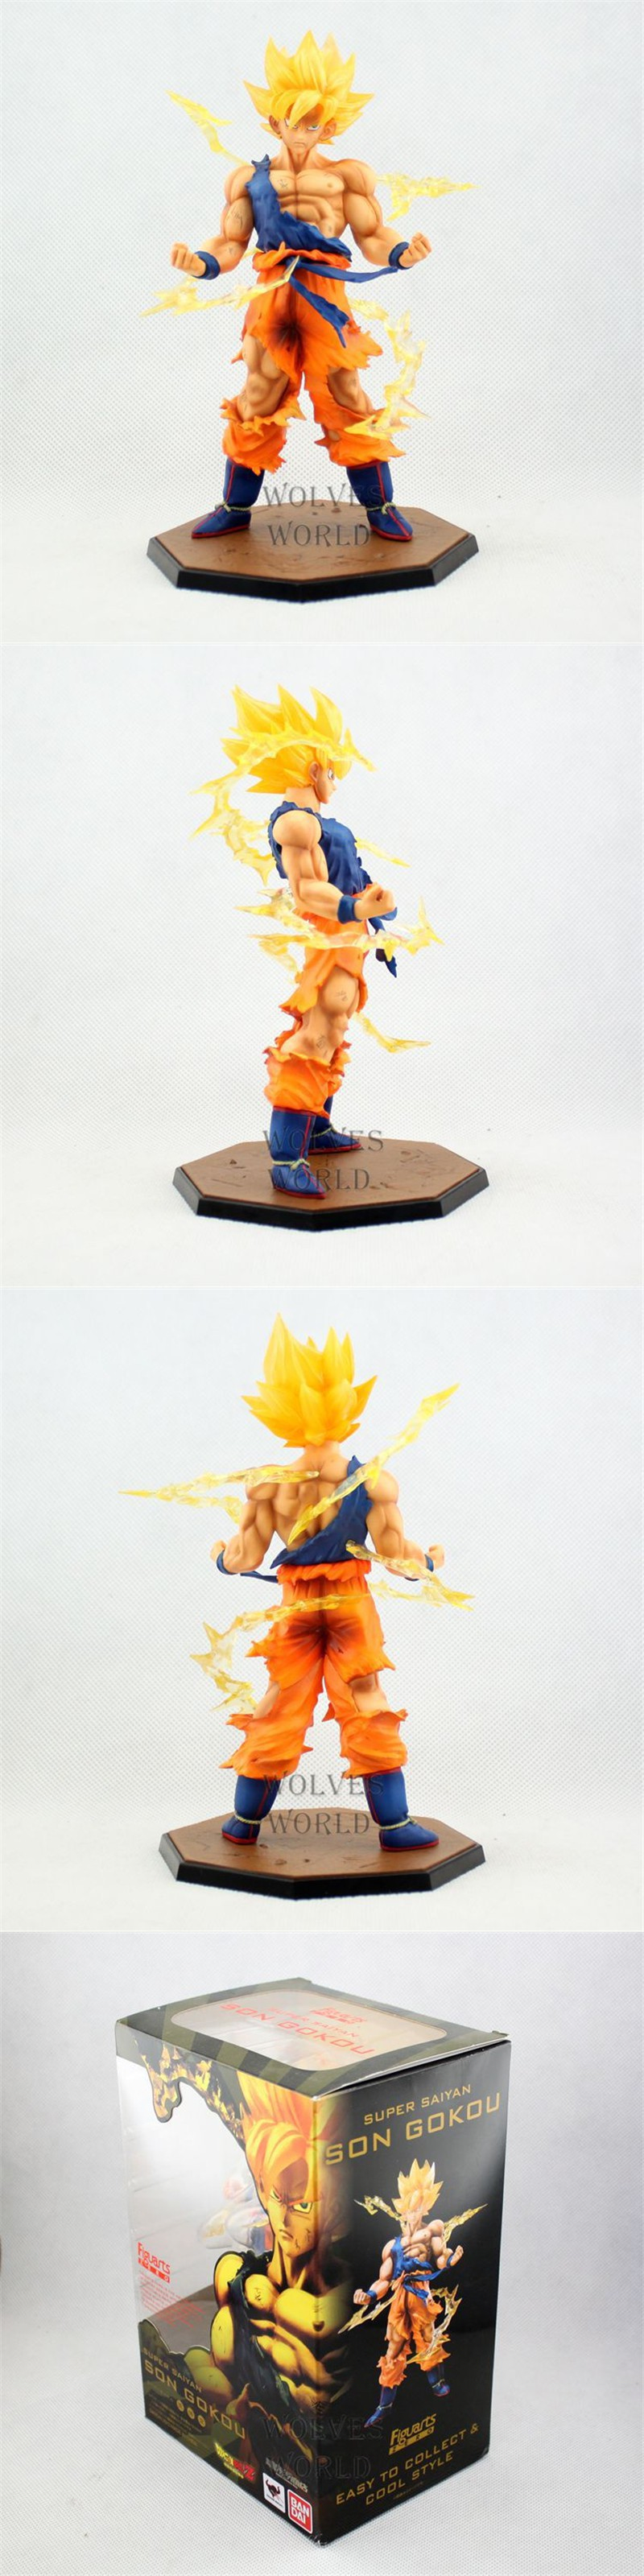 Anime Dragon ball z Super Saiyan Goku action toy figures pvc kids